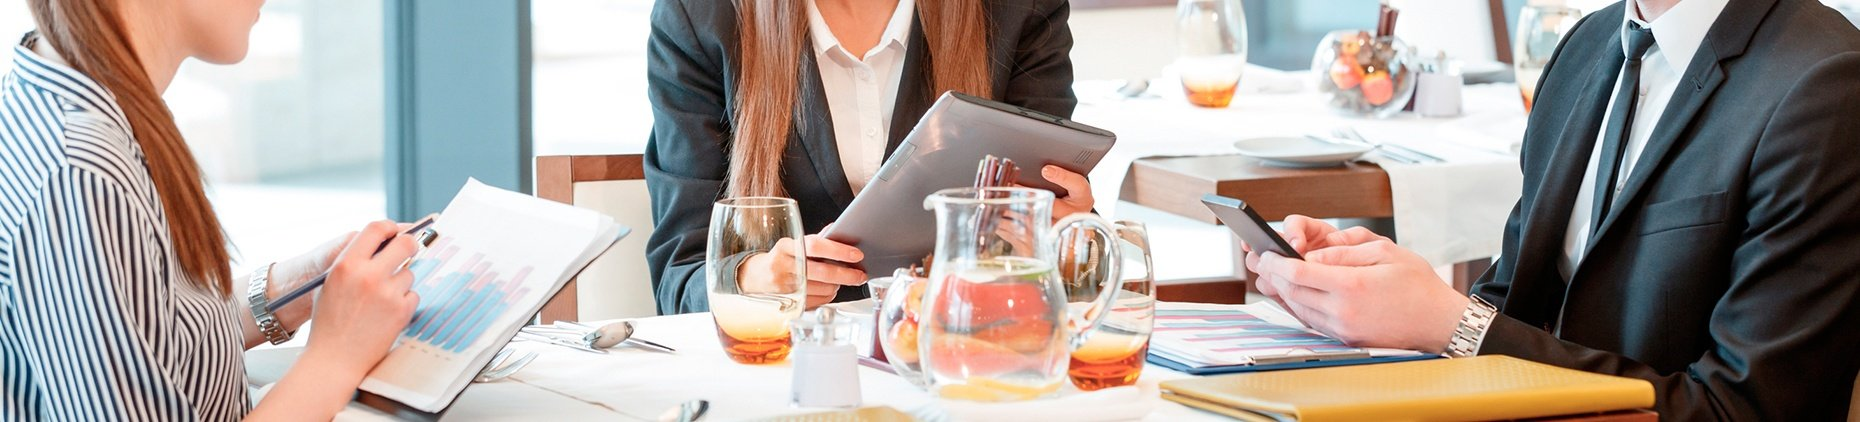 Networking Skills: 3 Ways to Get to the Real Decision Maker